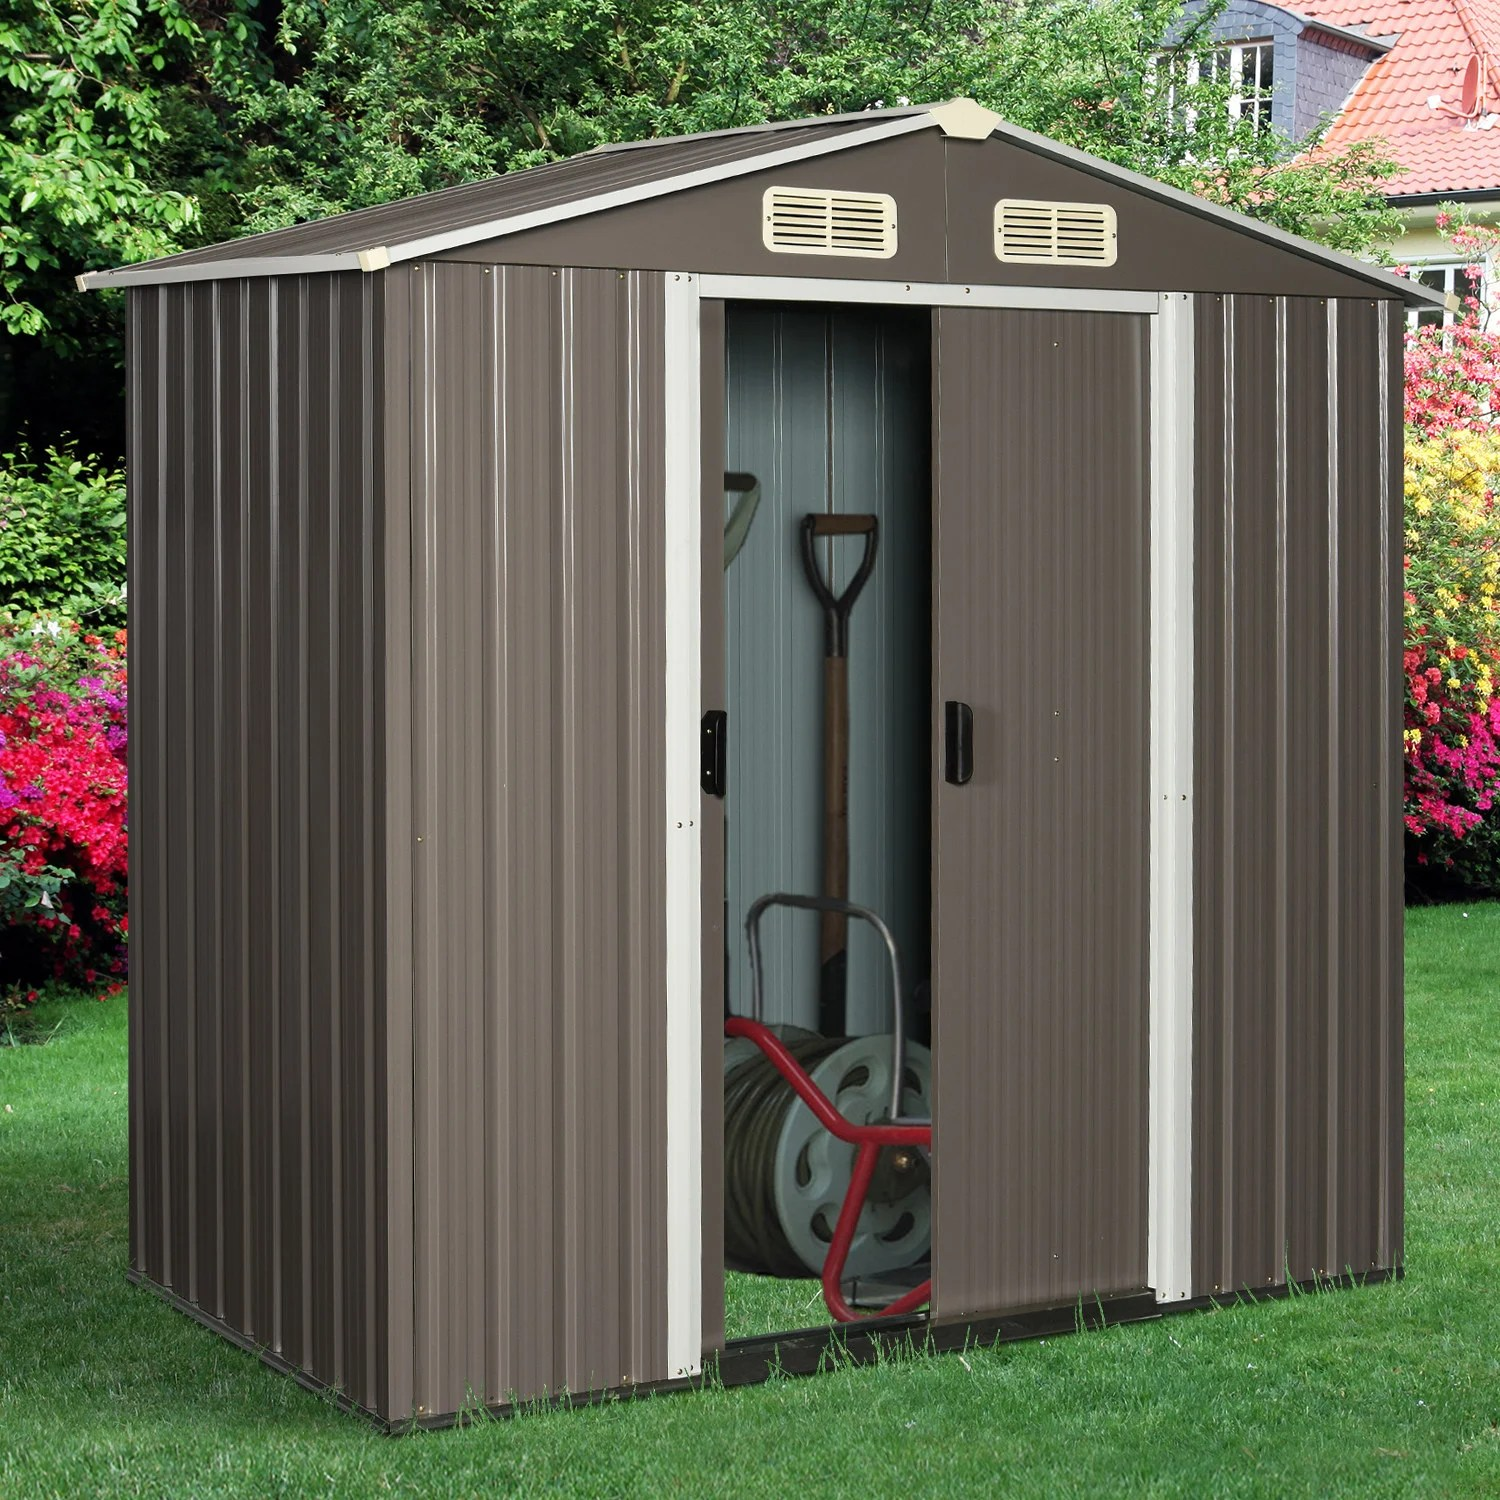 outsunny 6 3 x 3 6 x 6 garden storage shed outdoor patio yard metal tool storage house w double doors grey